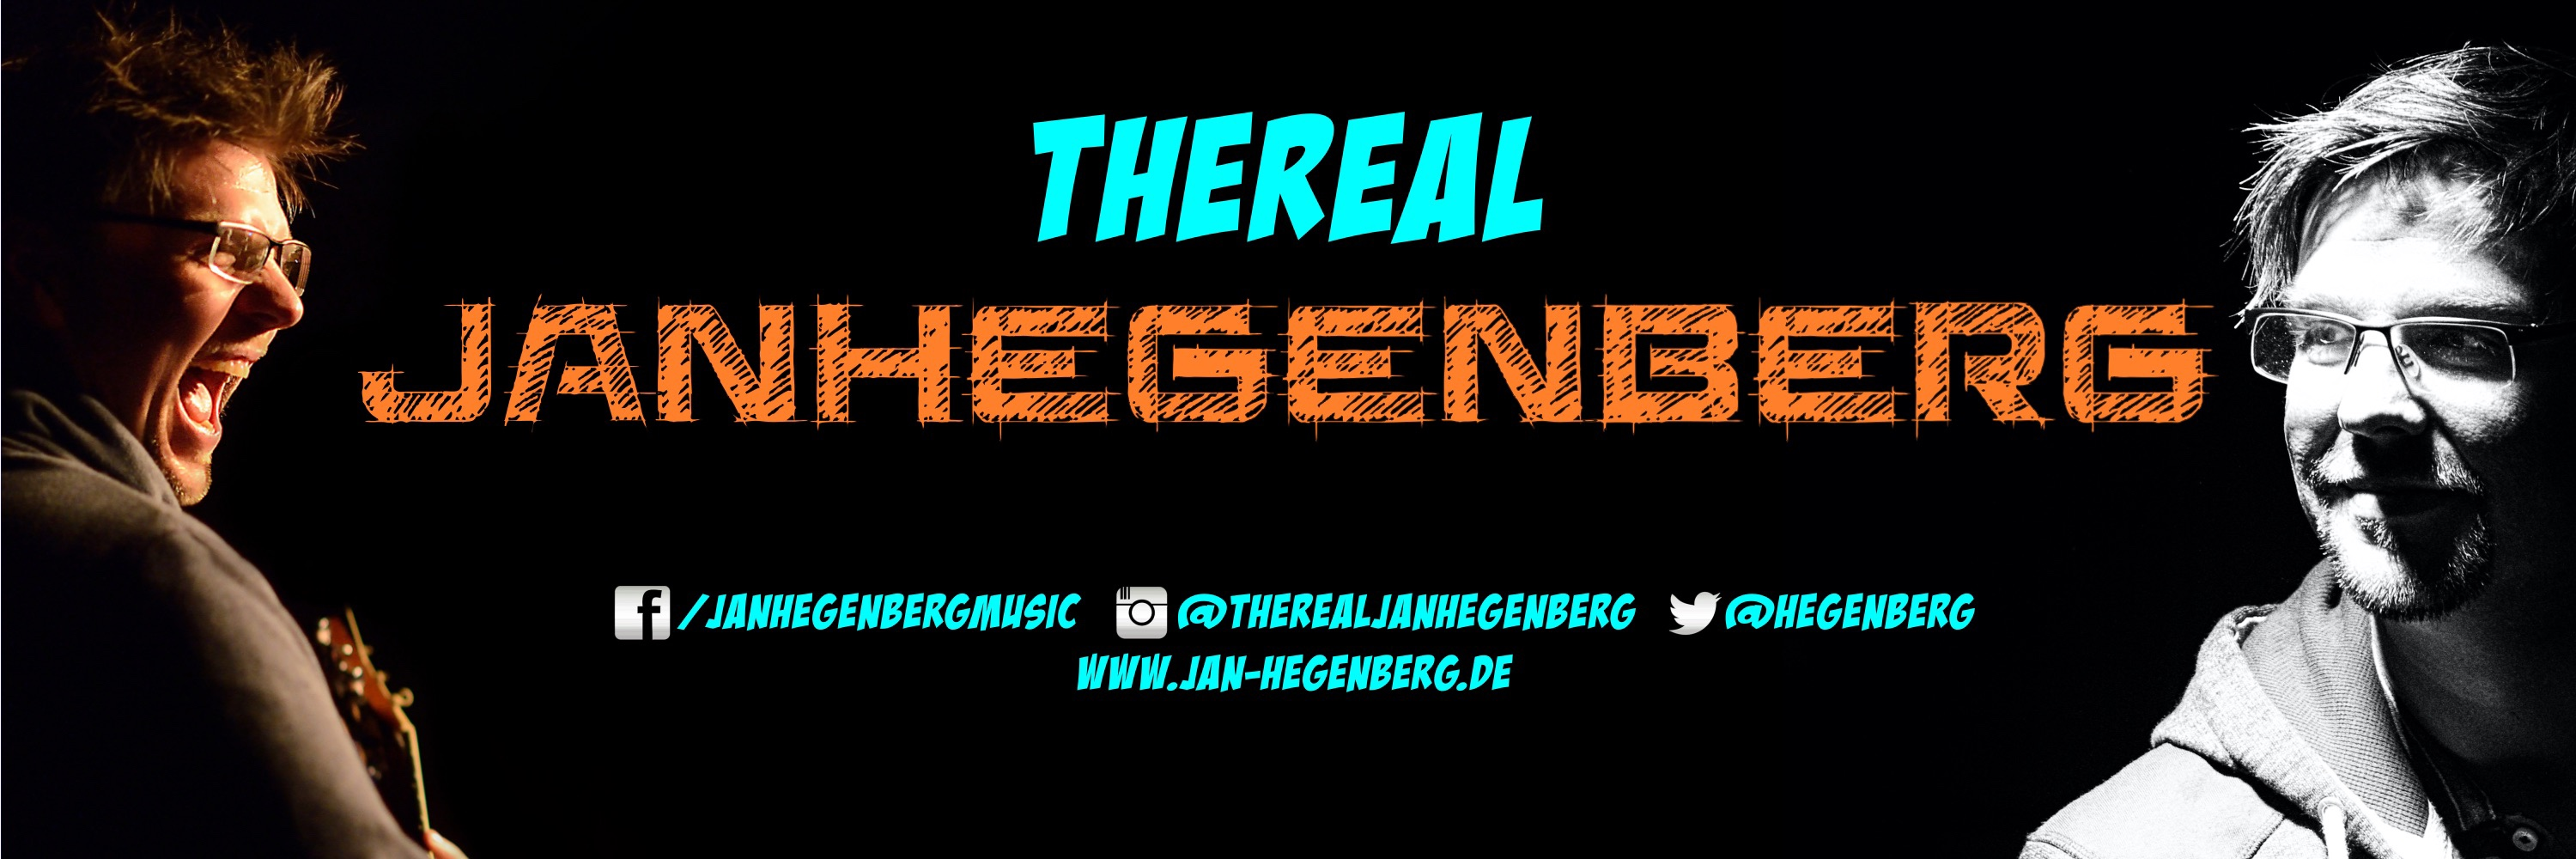 Jan Hegenberg Merchandise - Official Merchandise